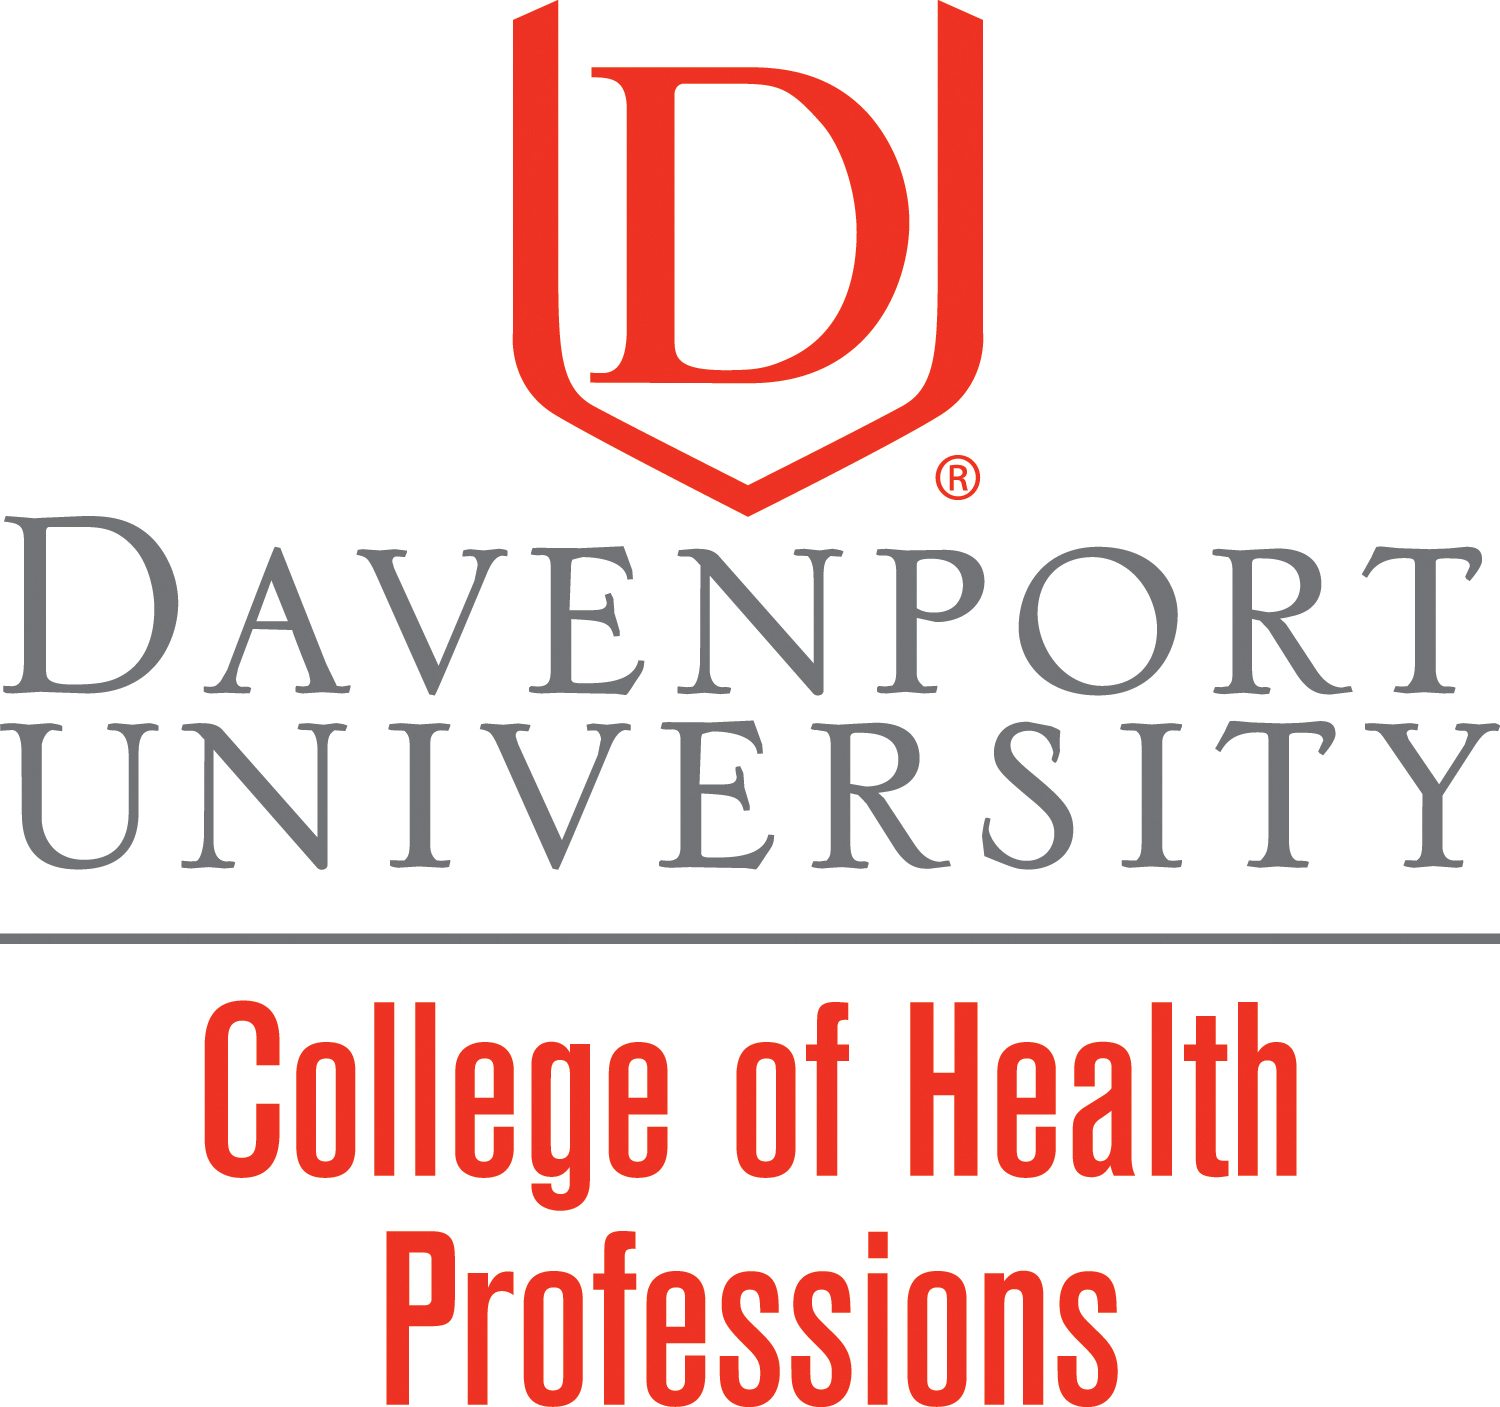 Davenport University - College of Health Professions